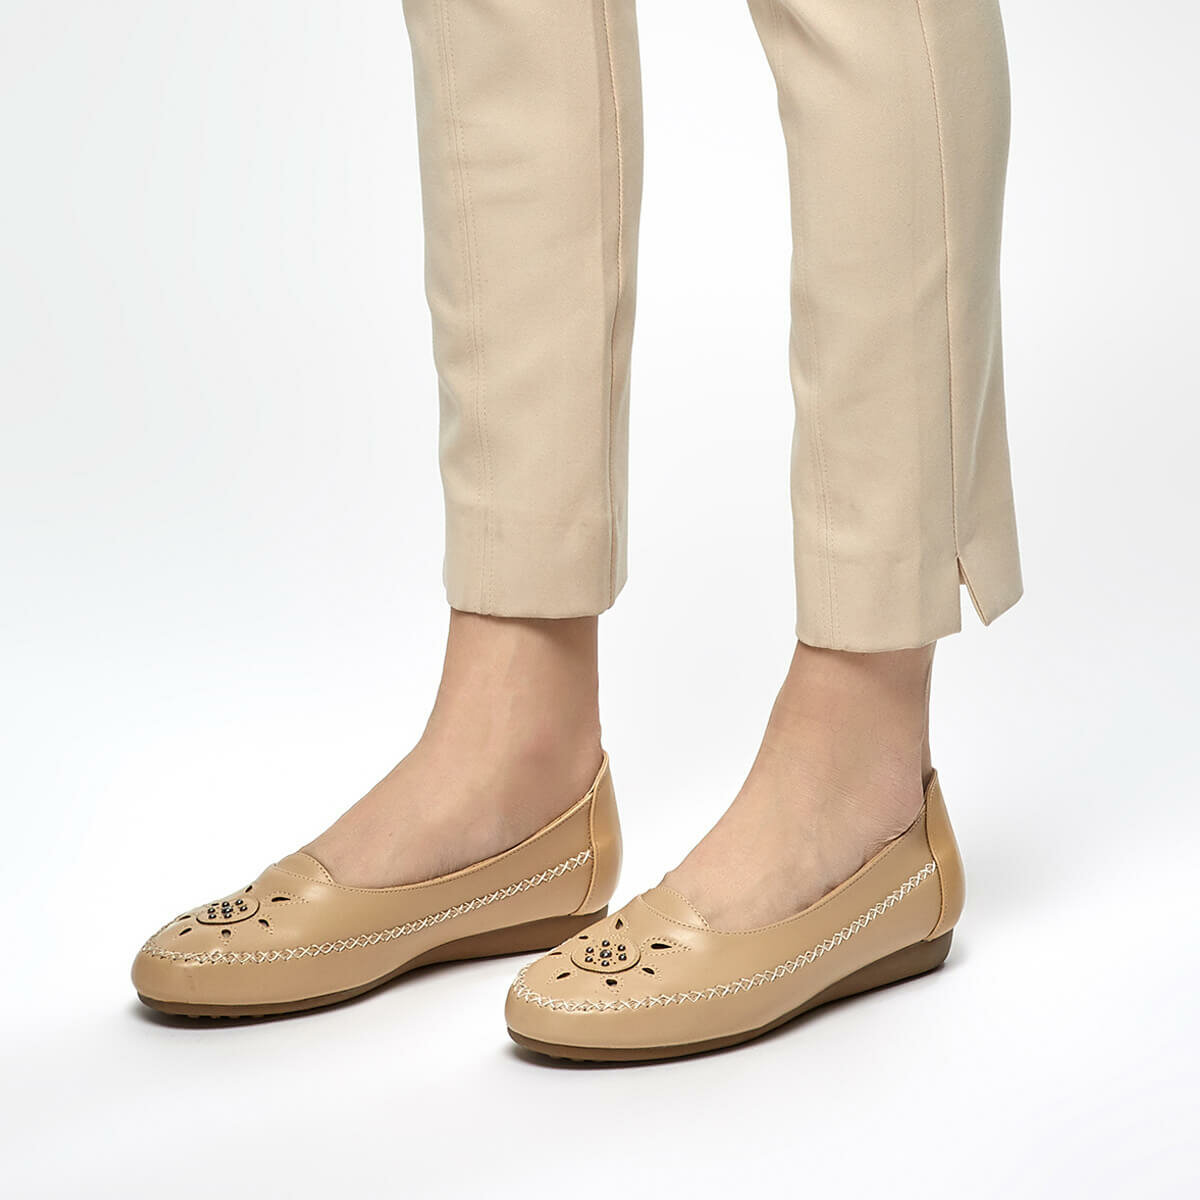 FLO 91.150685.Z Beige Women 'S Shoes Polaris